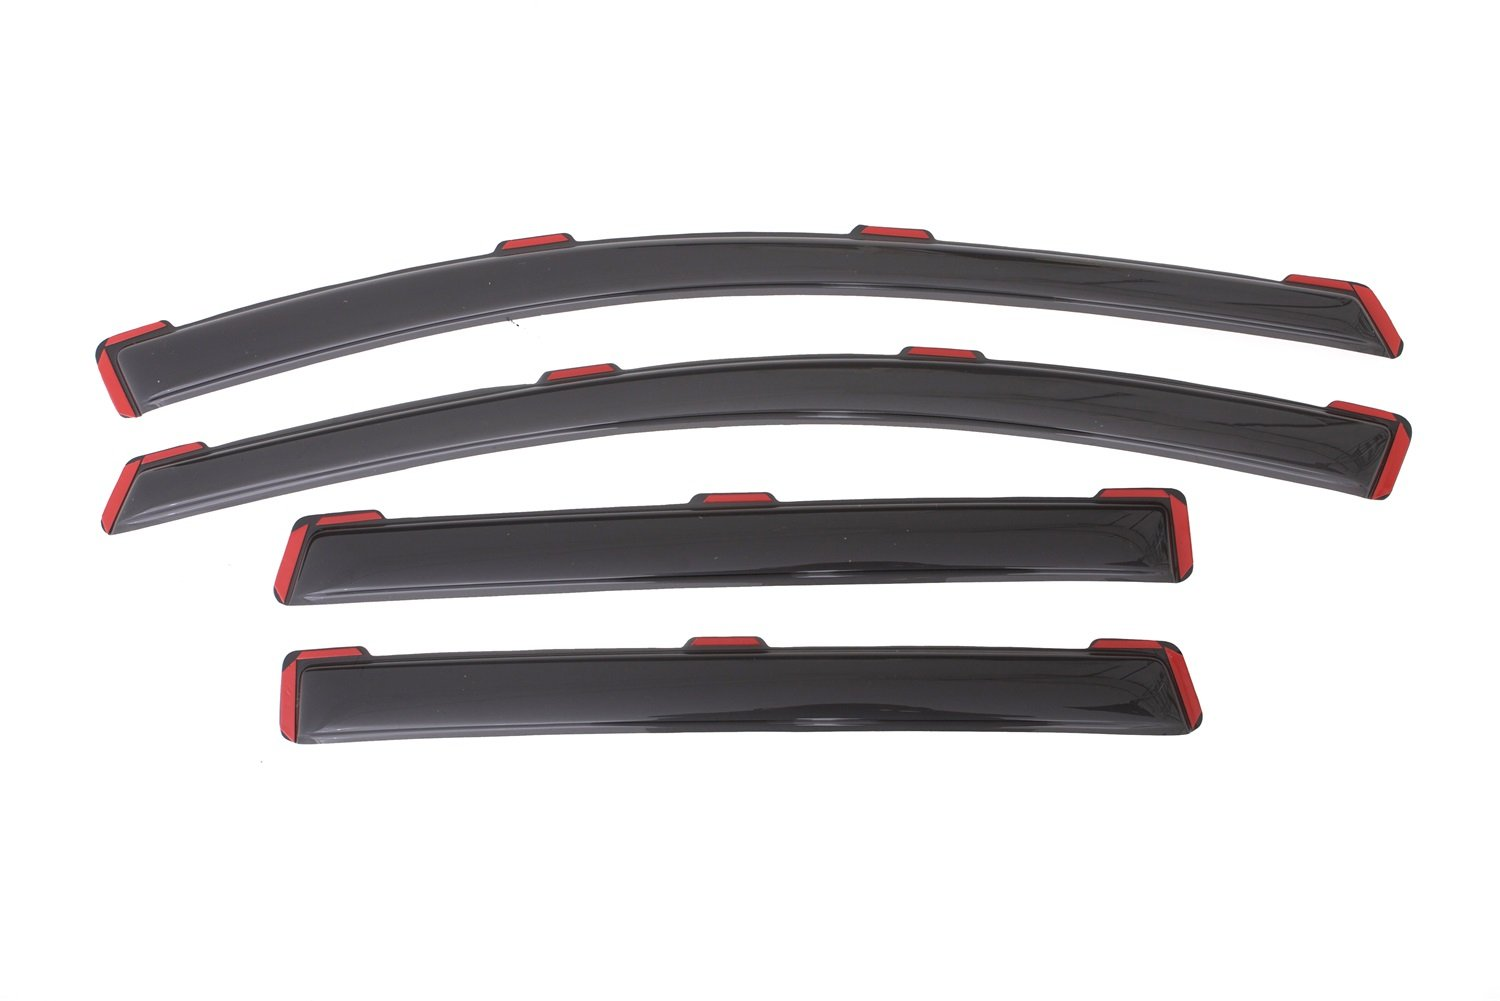 Auto Ventshade 194383 In-Channel Ventvisor Side Window Deflector, 4-Piece Set for 2013-2018 Ford Escape